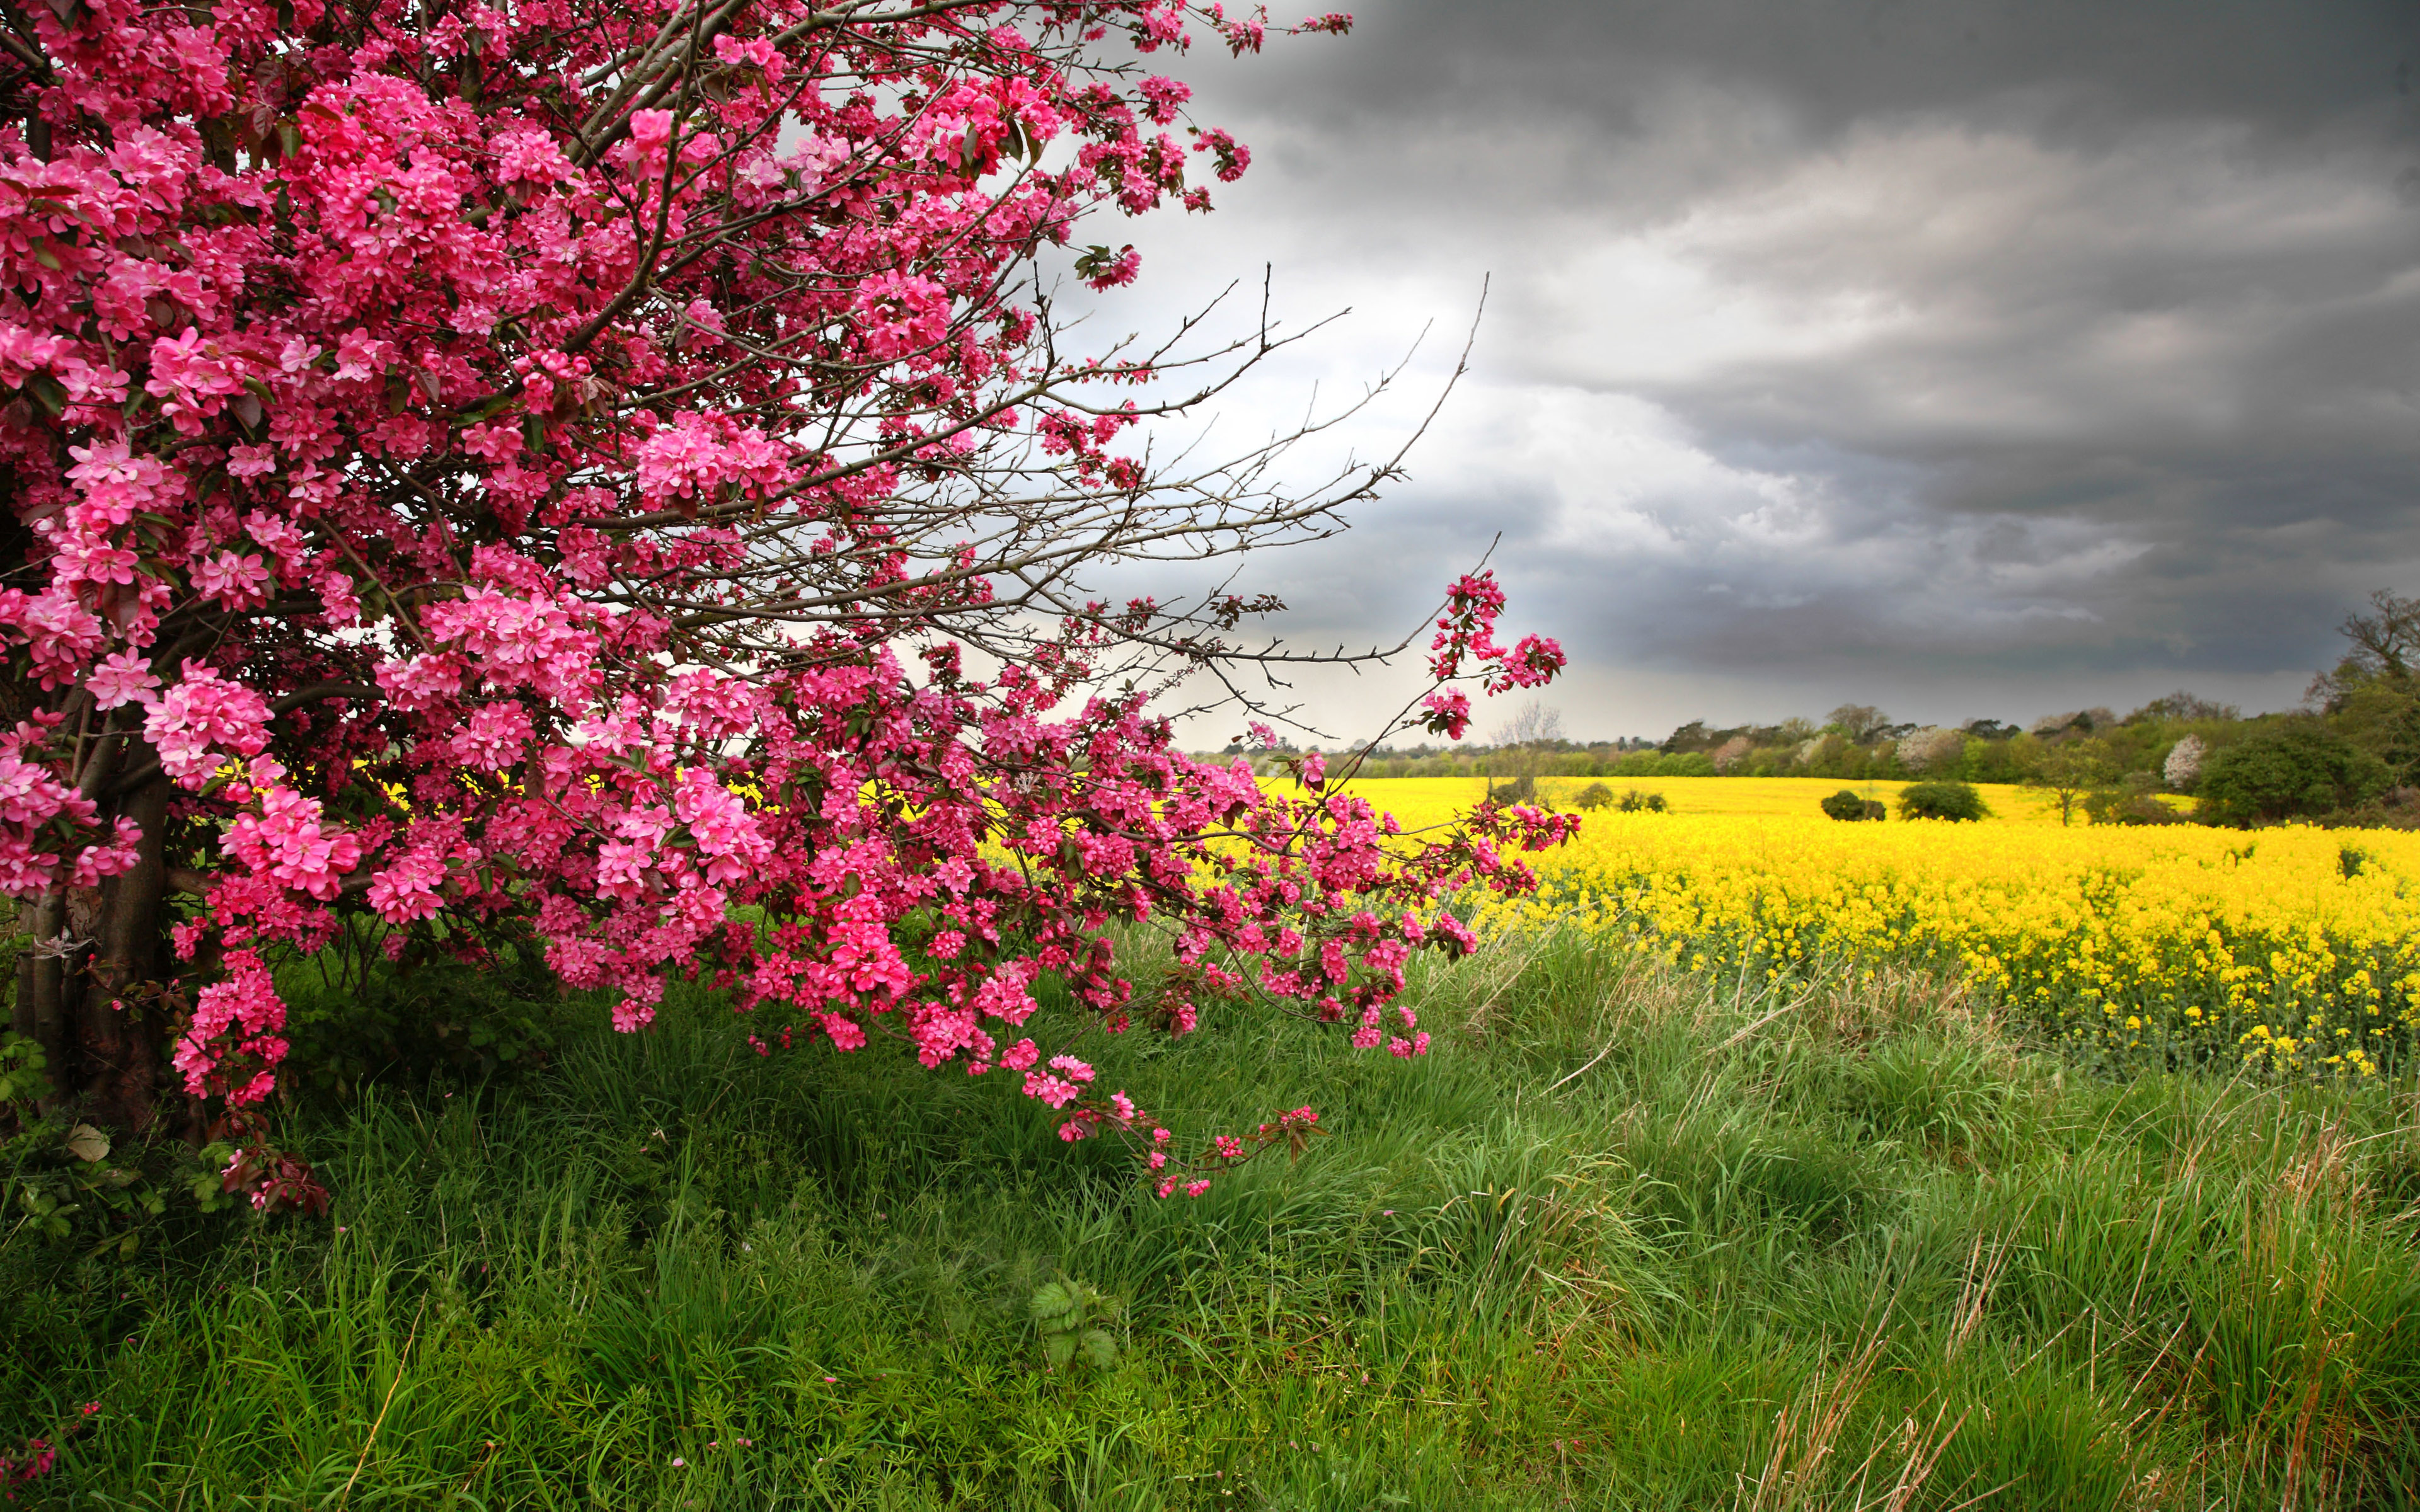 Fall Season Live Wallpaper For Android Color Spring Tree With Pink Flowers With Yellow Field